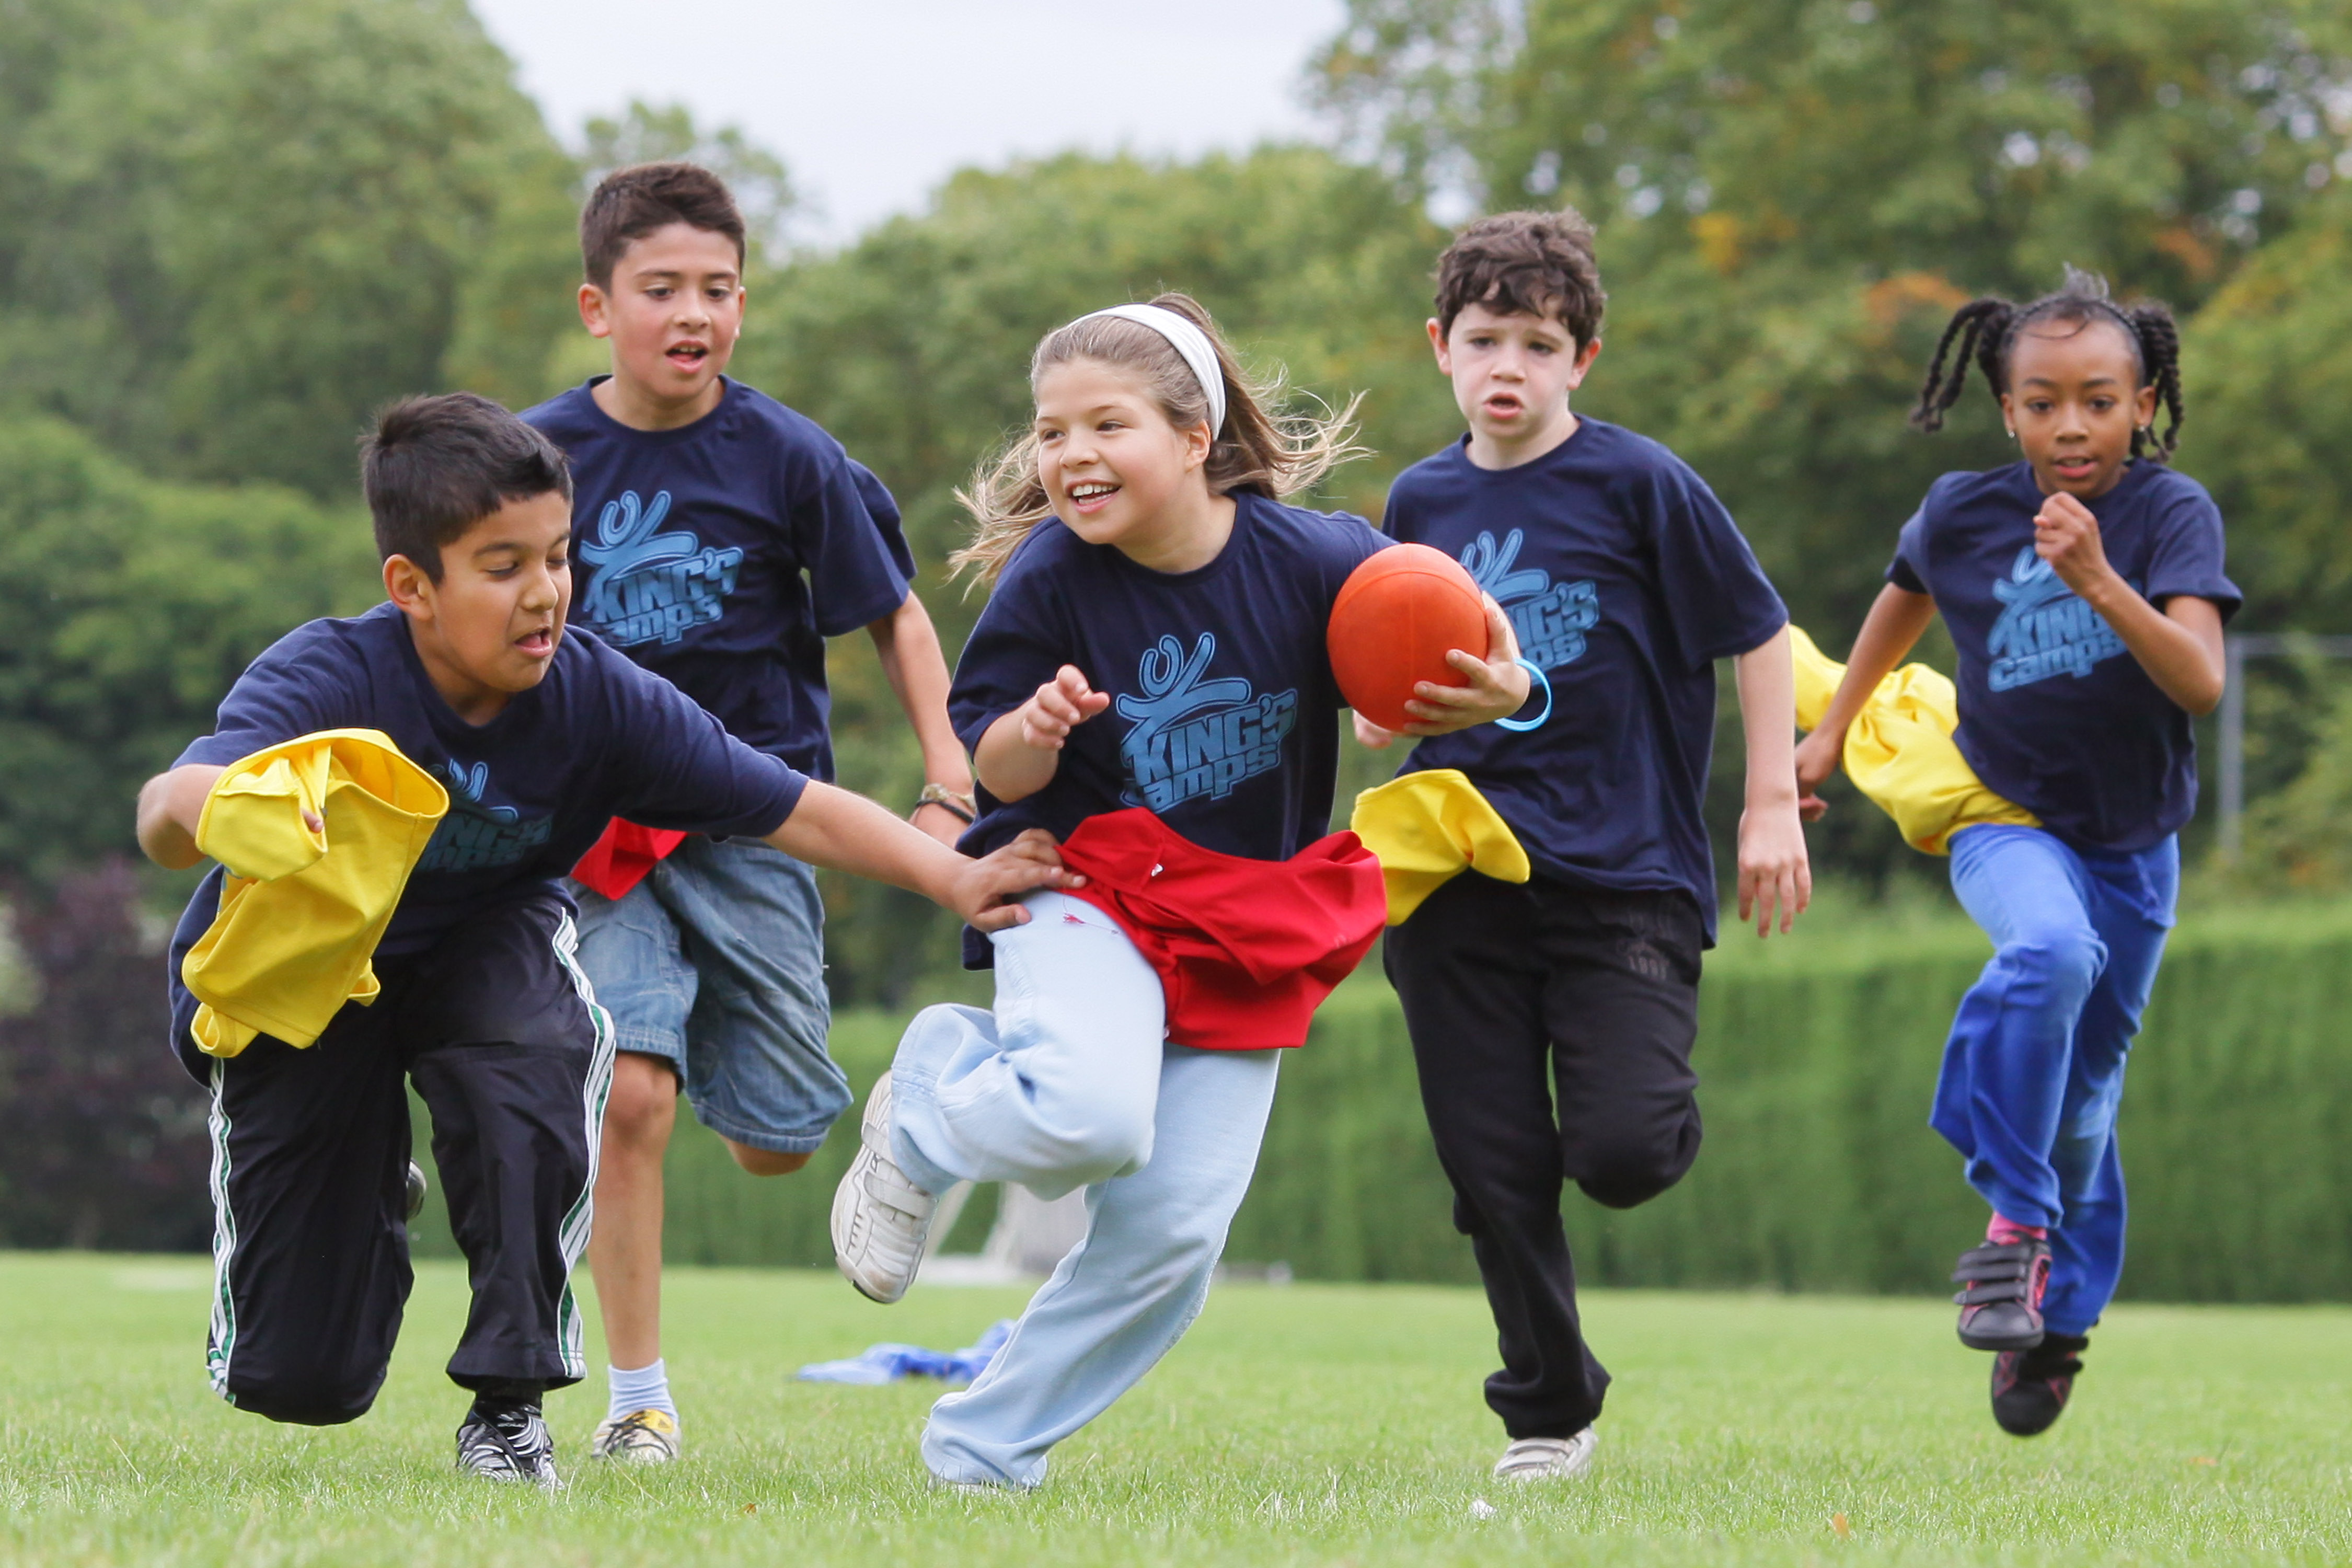 Checklist for Sports-Camp